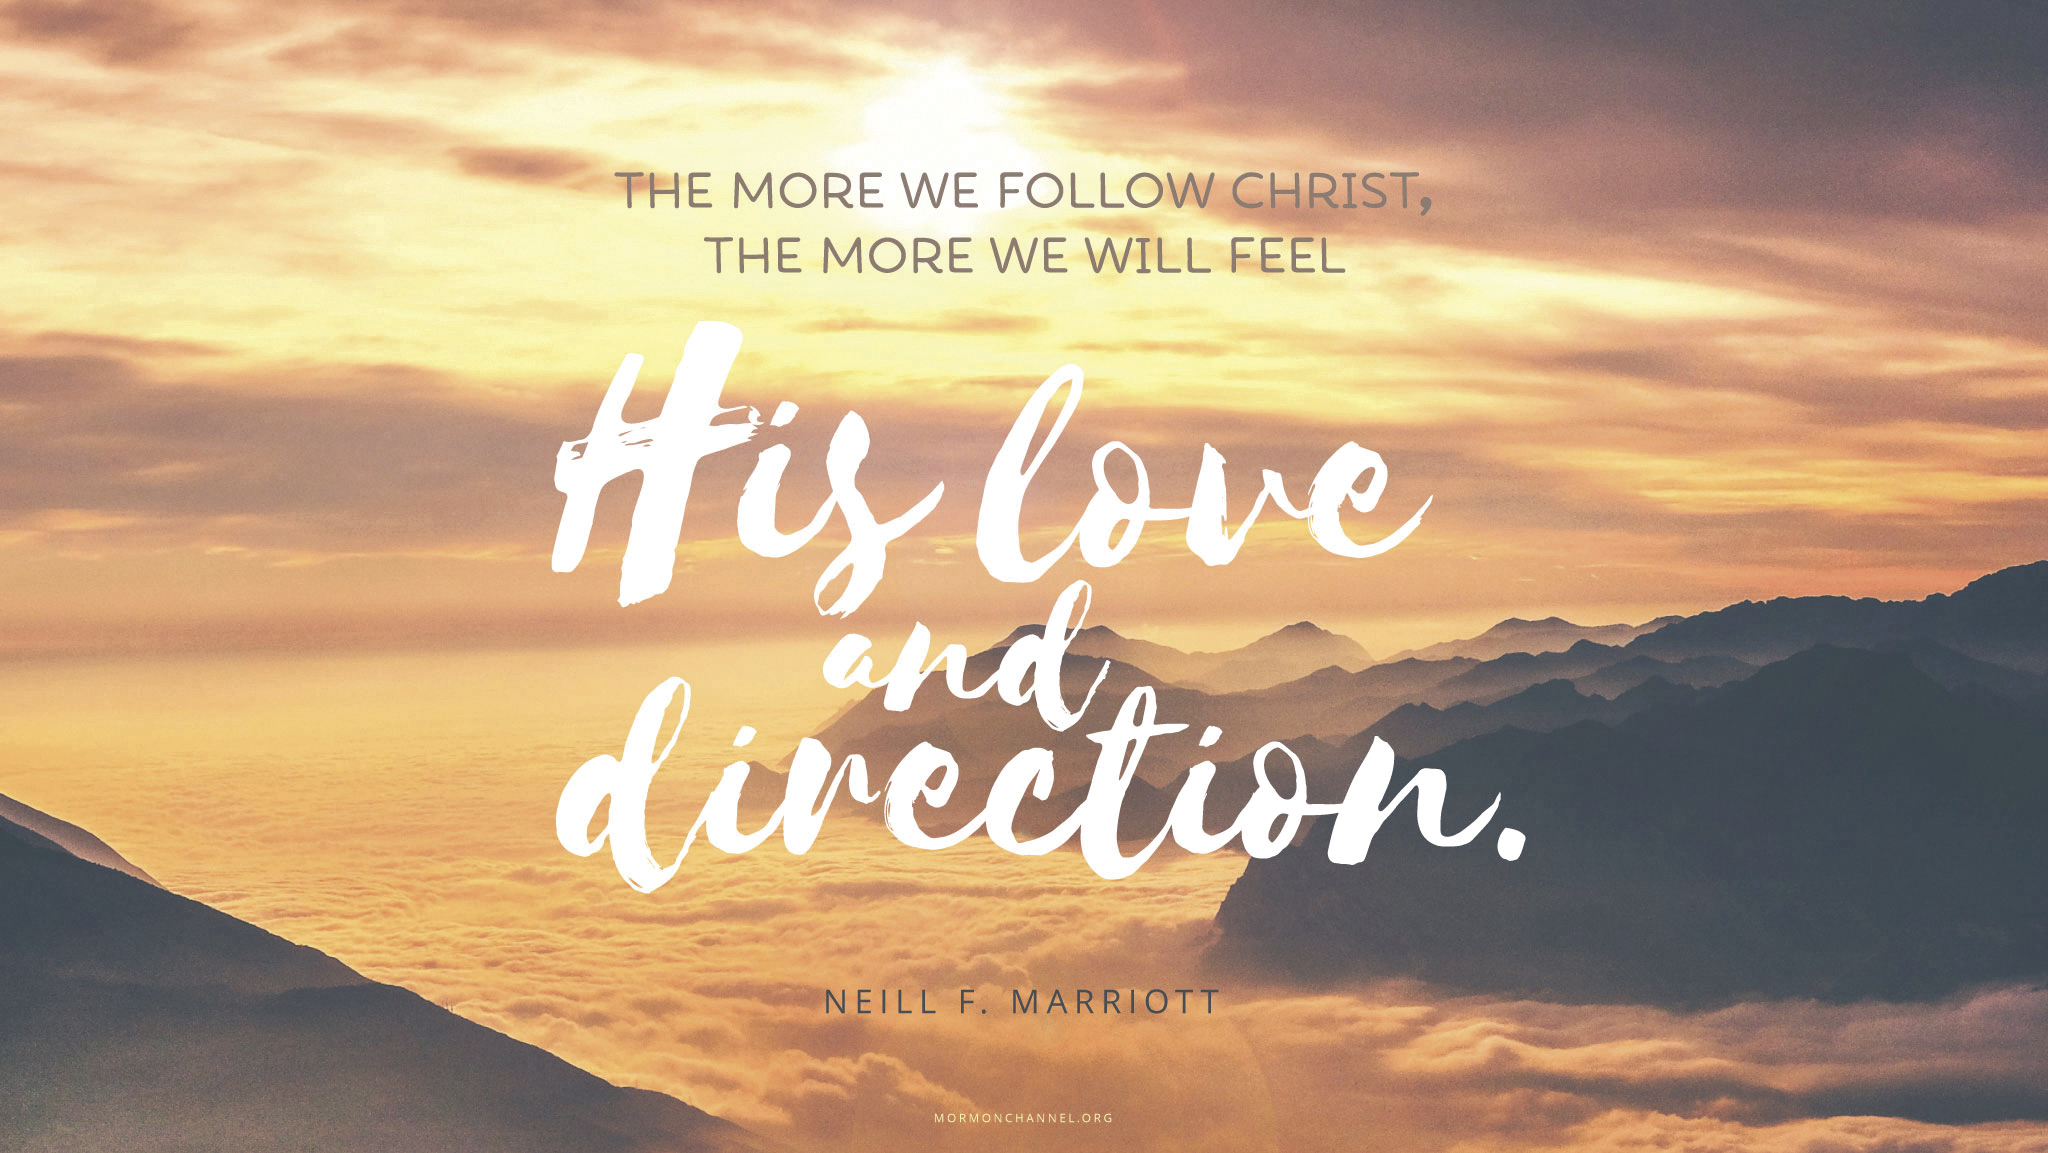 """""""The more we follow Christ, the more we will feel His love and direction.""""—Sister Neill F. Marriott, """"What Shall We Do?"""" © undefined ipCode 1."""